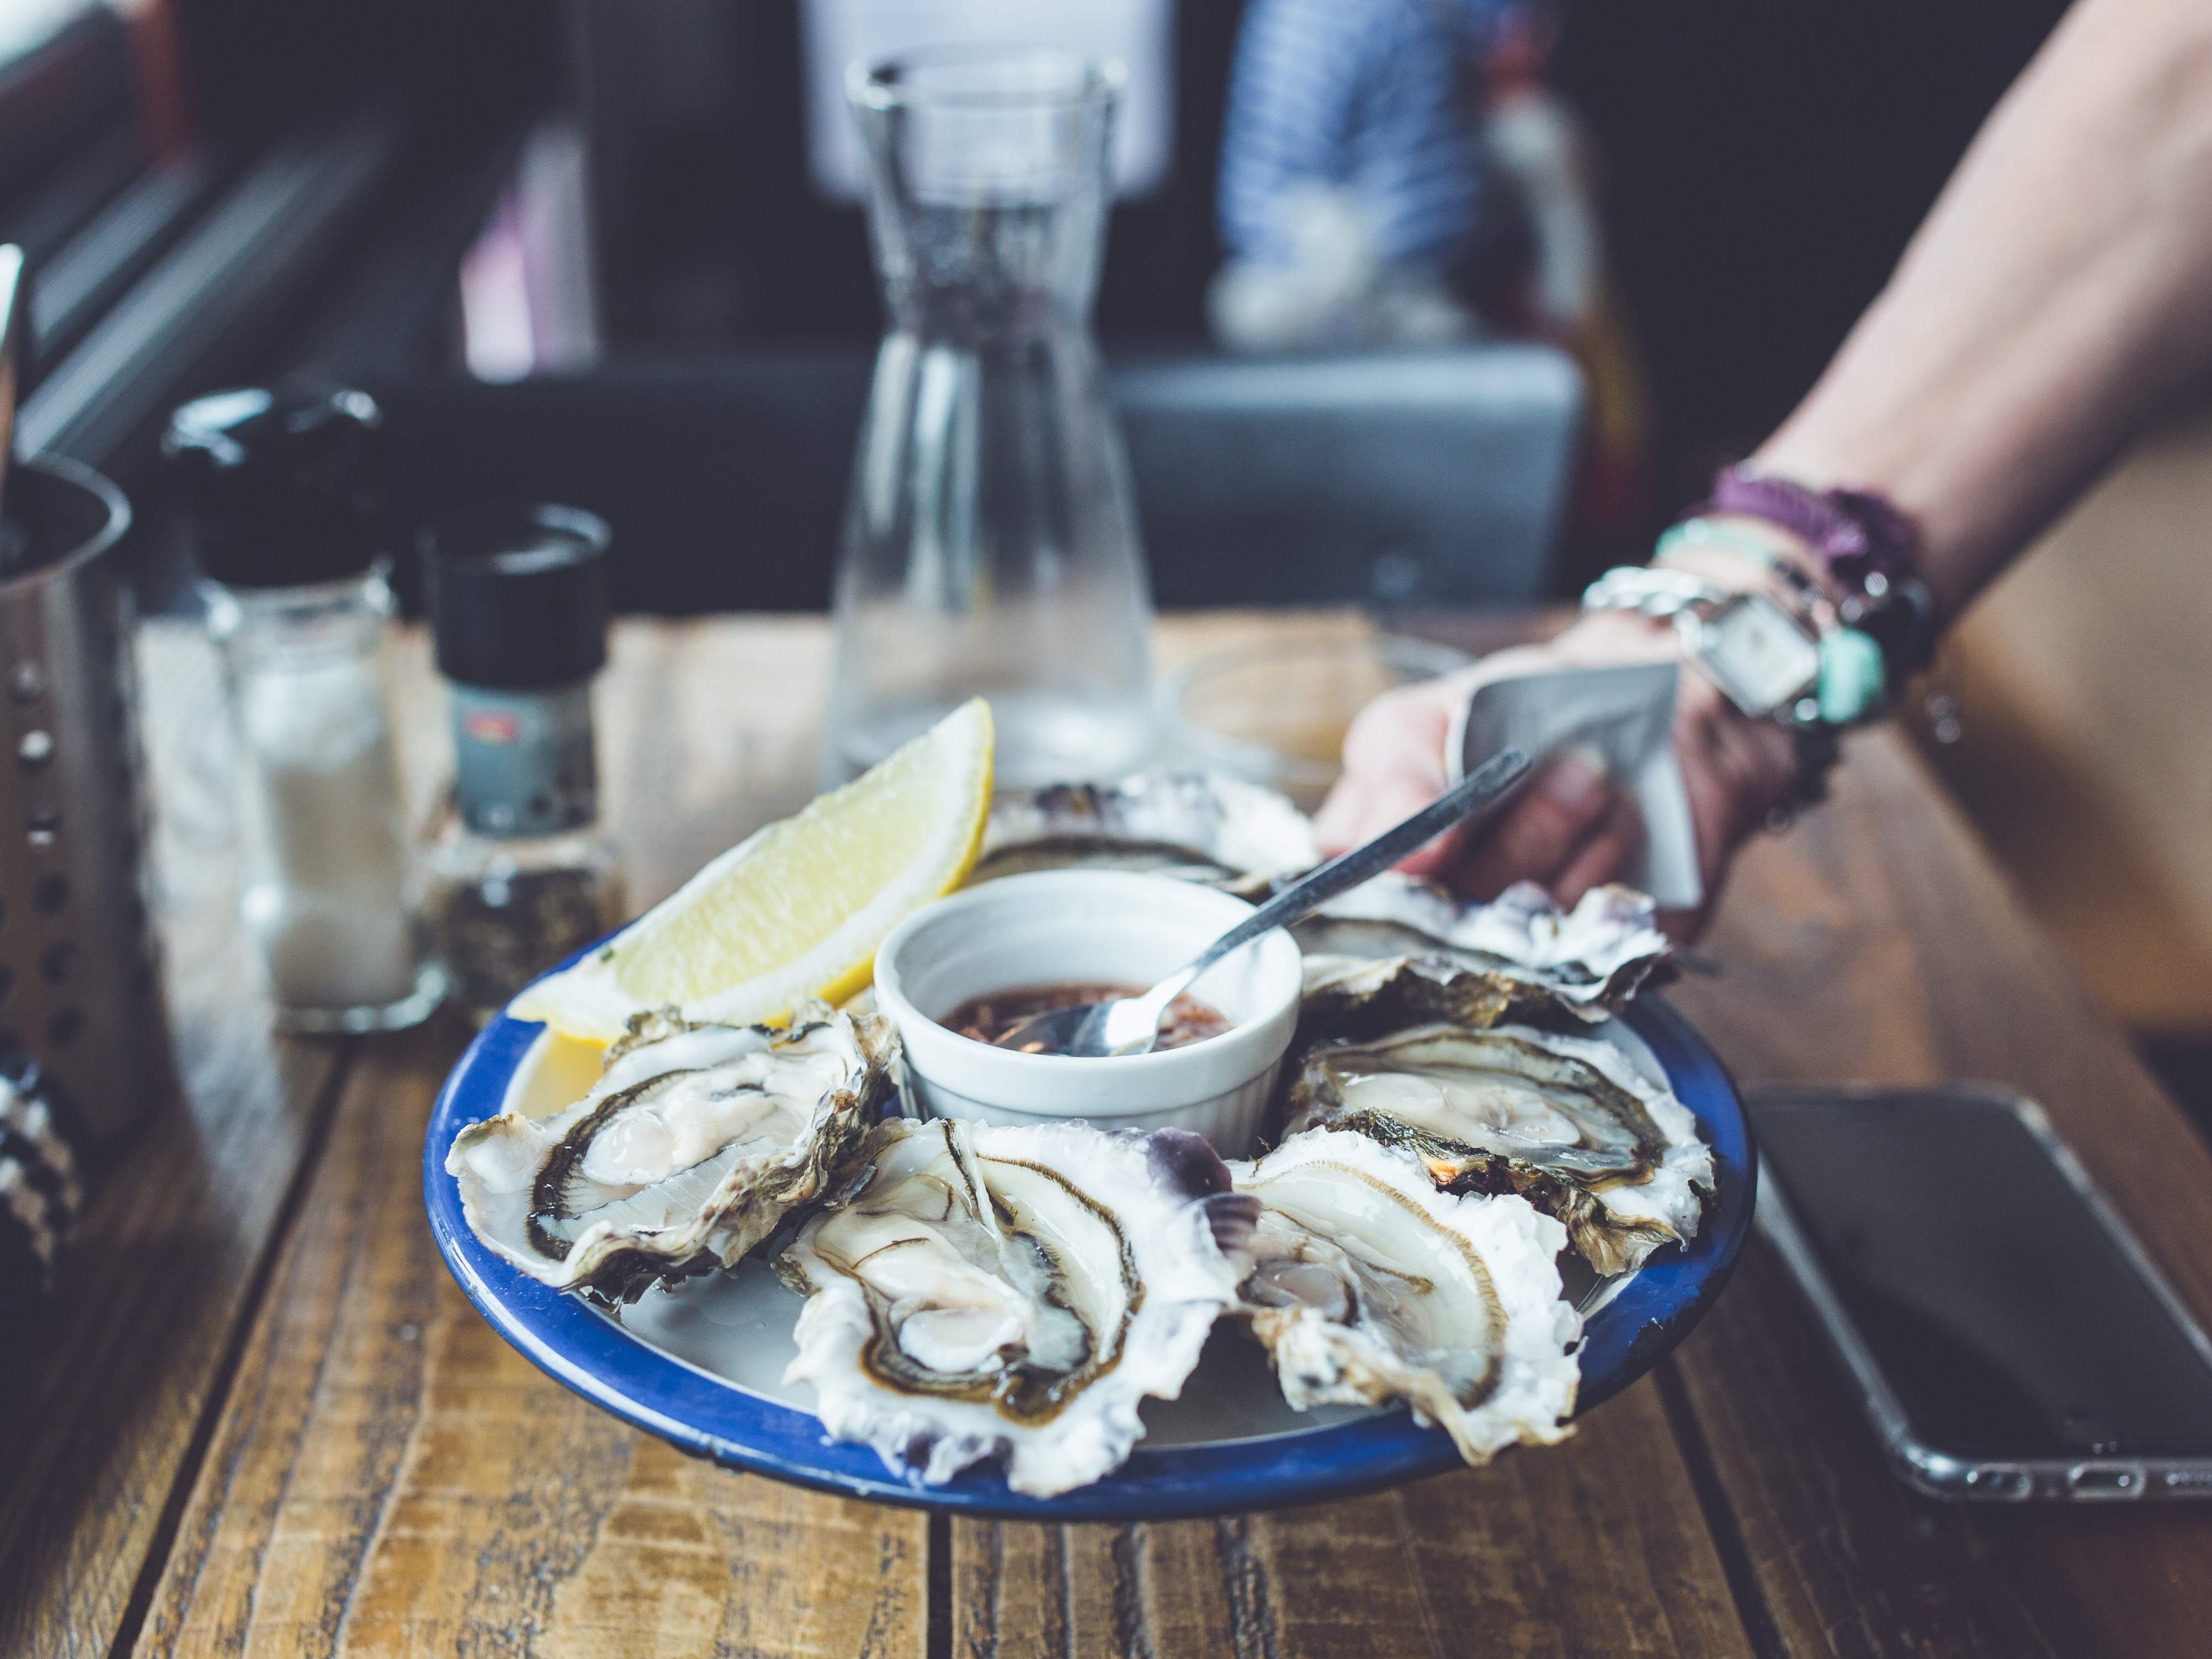 Turns out, it's safe to eat oysters year-round, and you can guess how we're celebrating